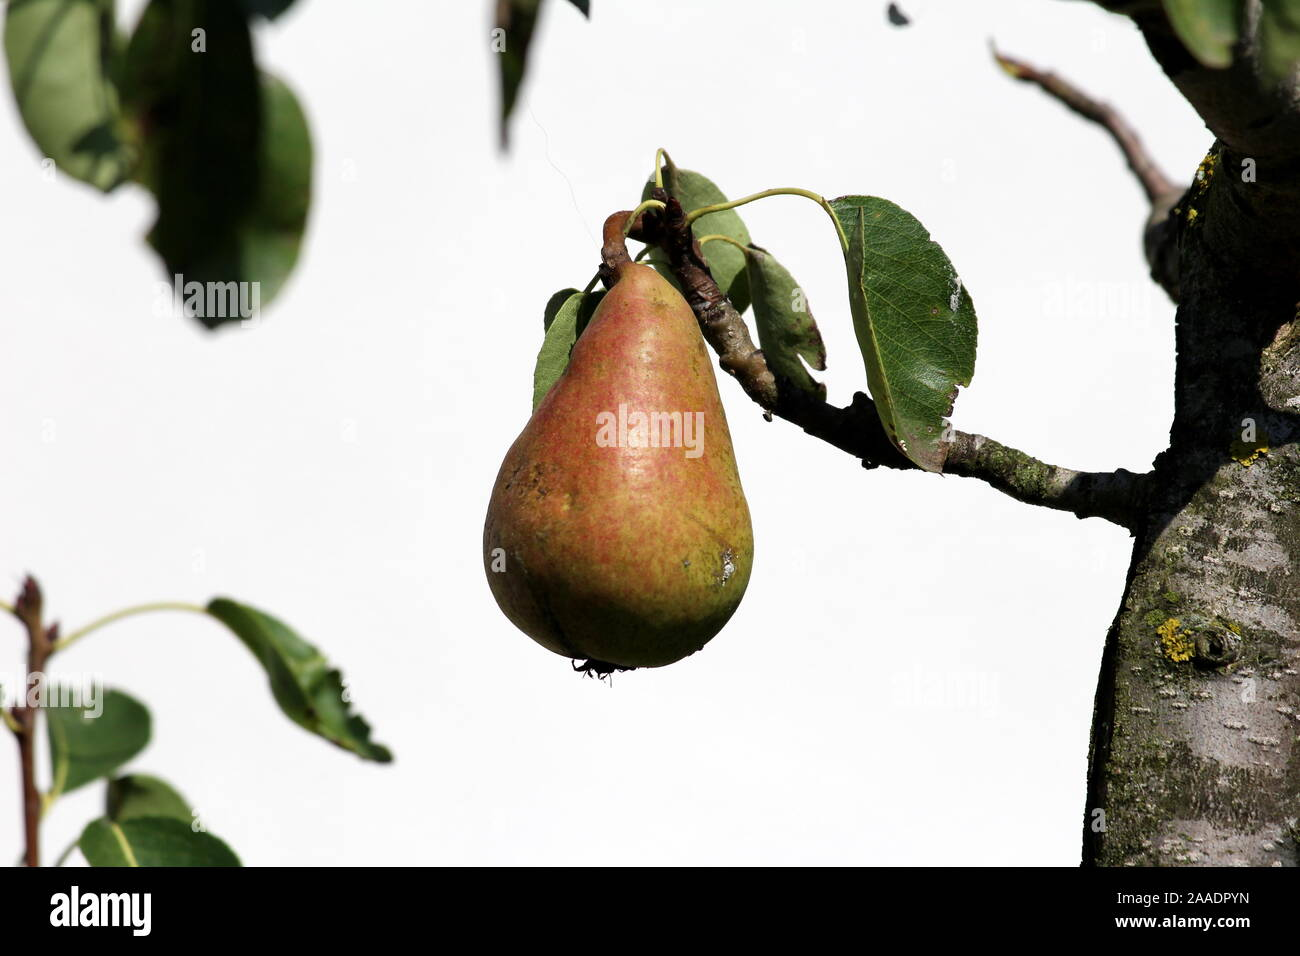 Single fully ripe pear ready for picking growing from small branch surrounded with few green leaves in local home garden in front of family house wall Stock Photo